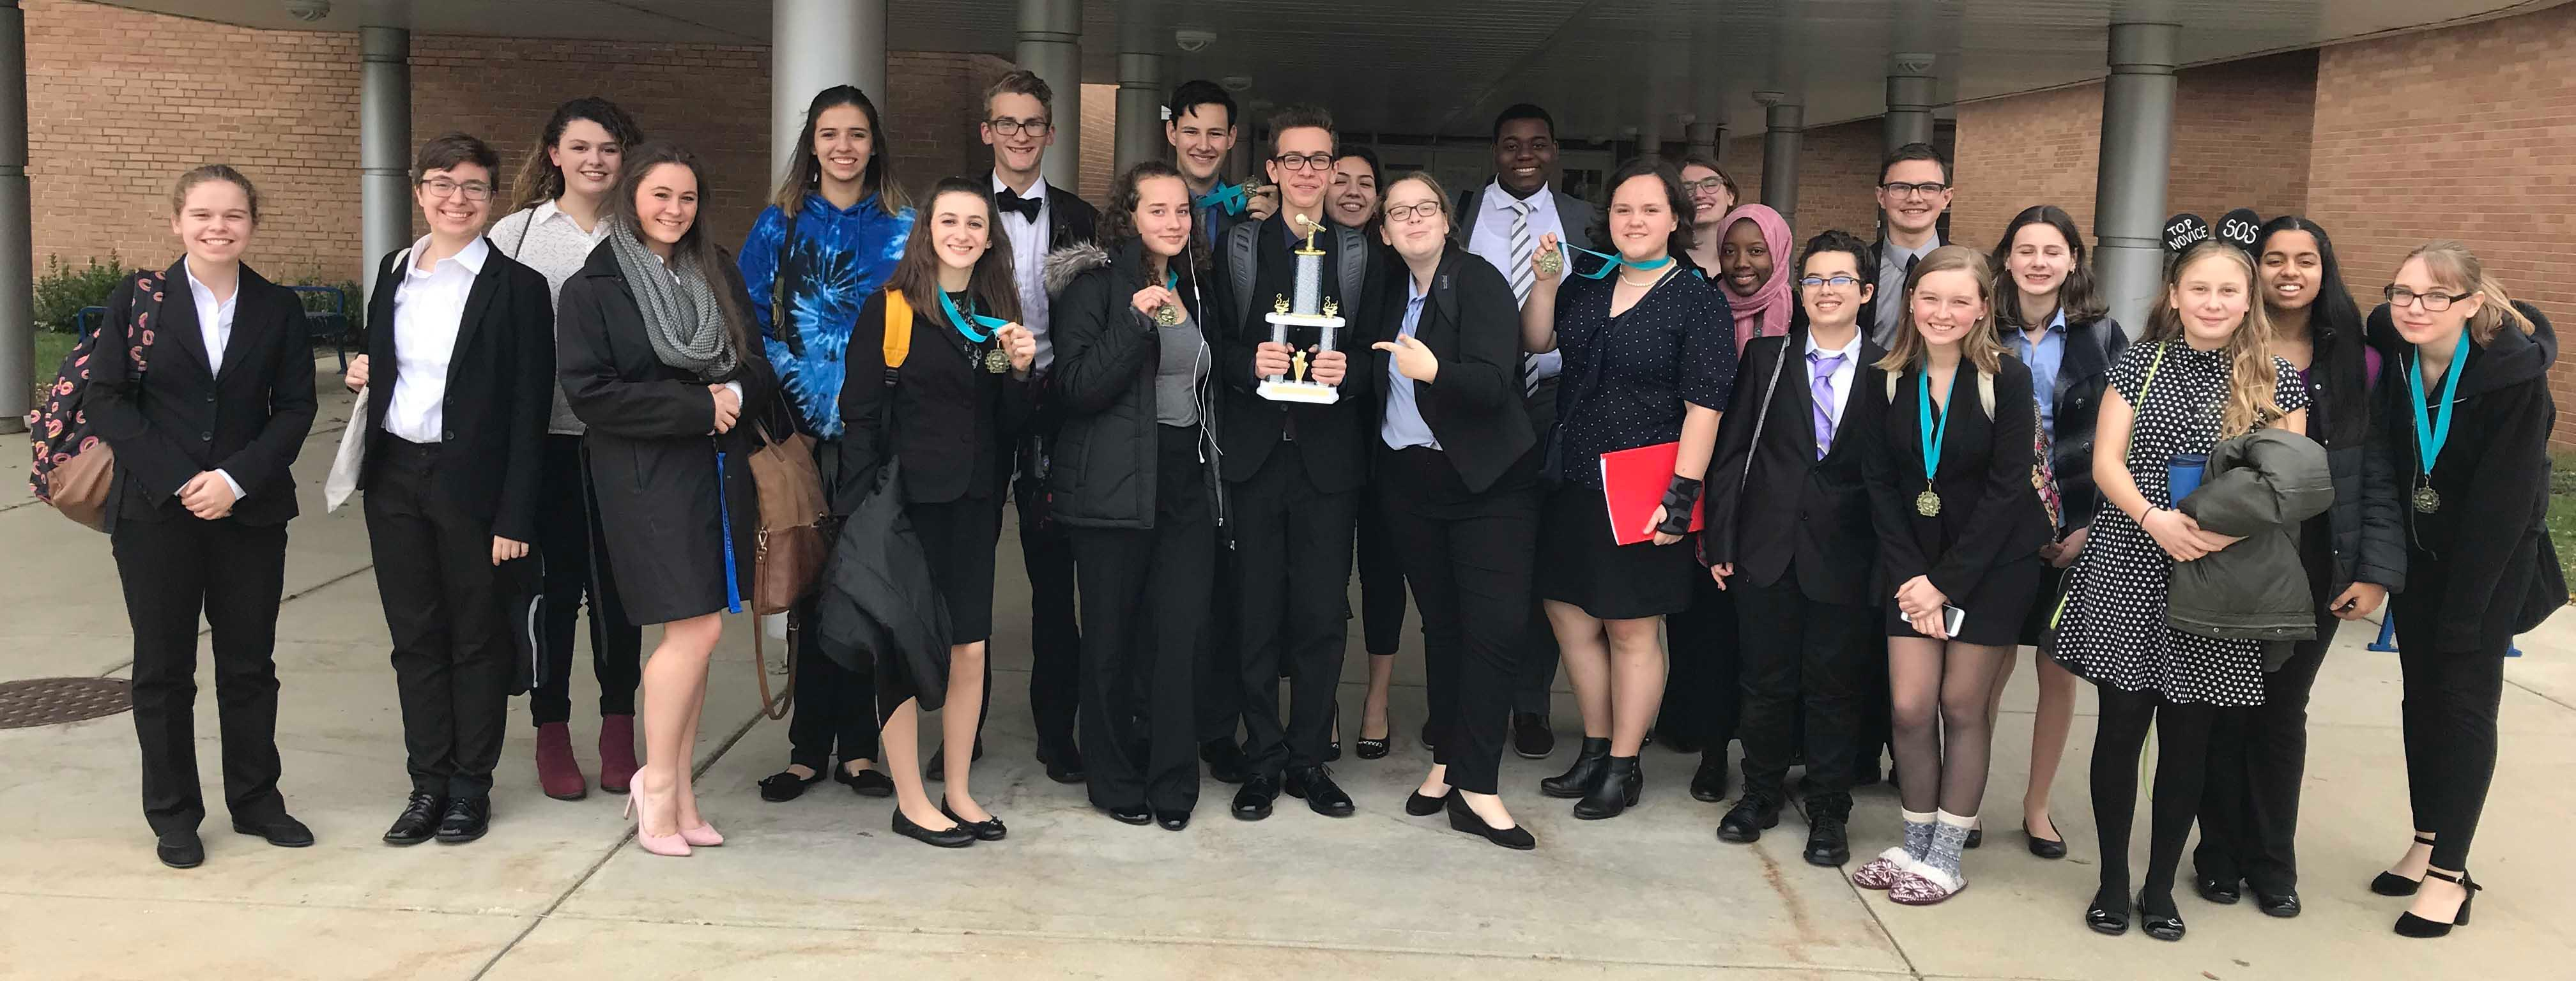 Willowbrook Speech Team earns awards at Joliet West High School tournament